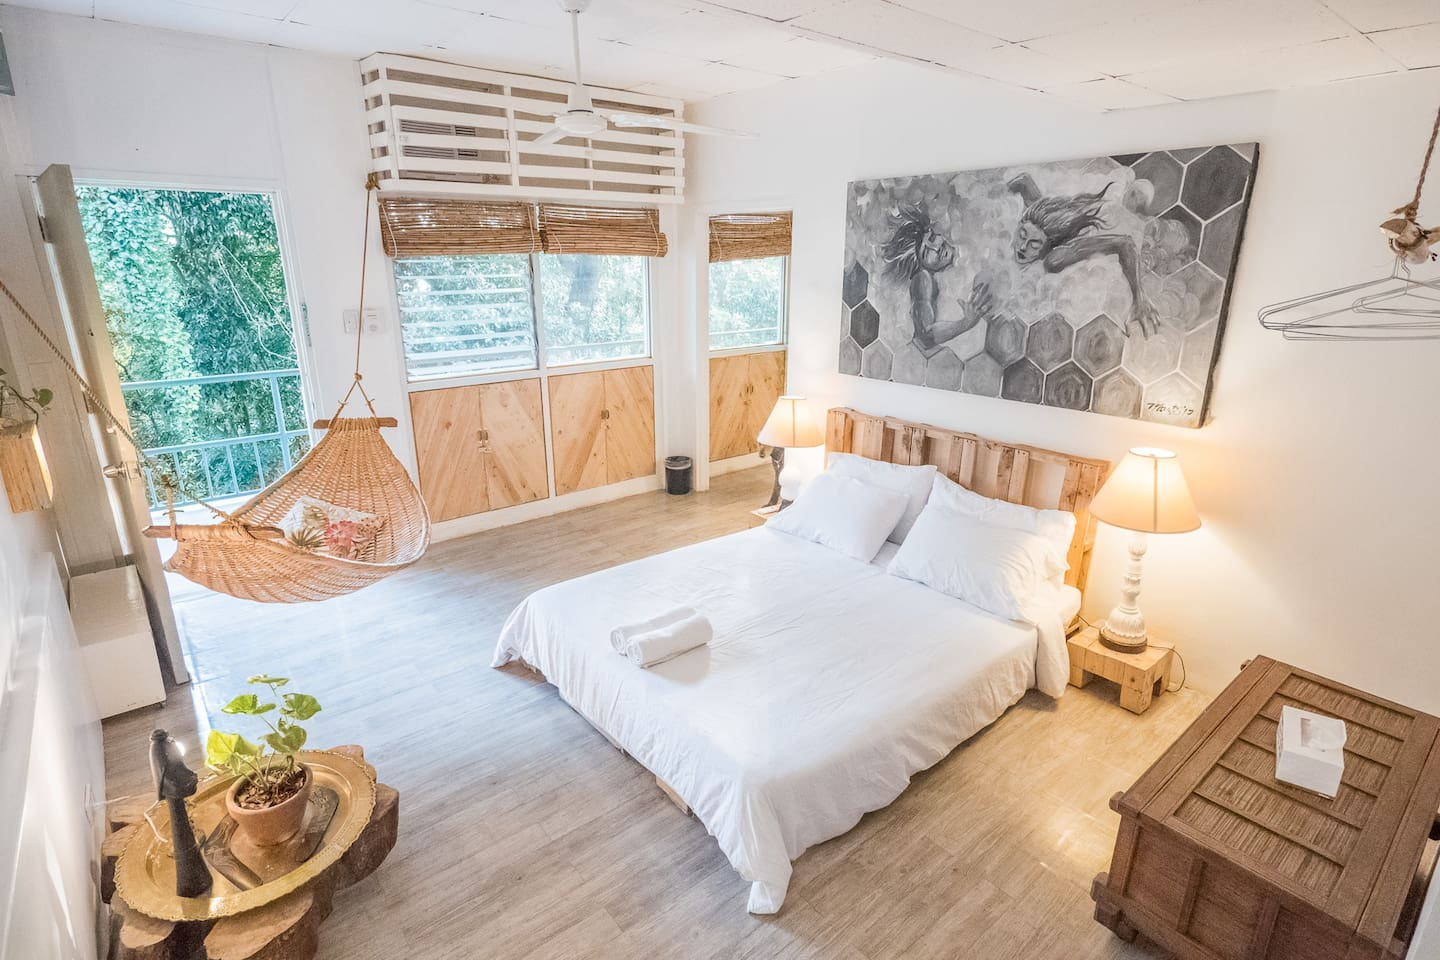 The bedroom of our Forest Nest looks out to a shared hallway with a partial view of Triboa Bay